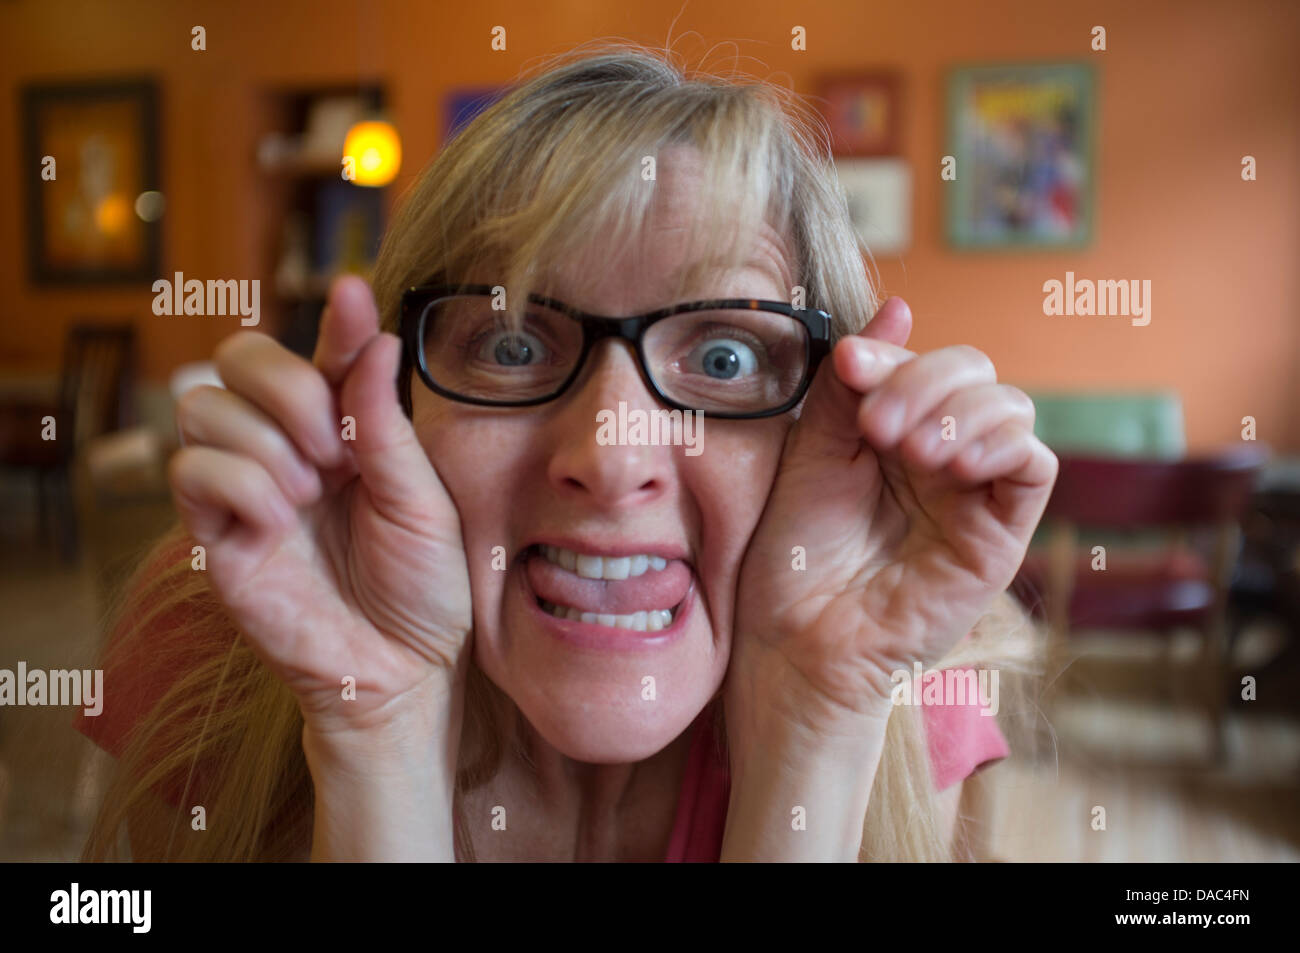 Closeup of woman looking at camera with silly expression- holding hands by face, eyes wide open and tongue stuck - Stock Image